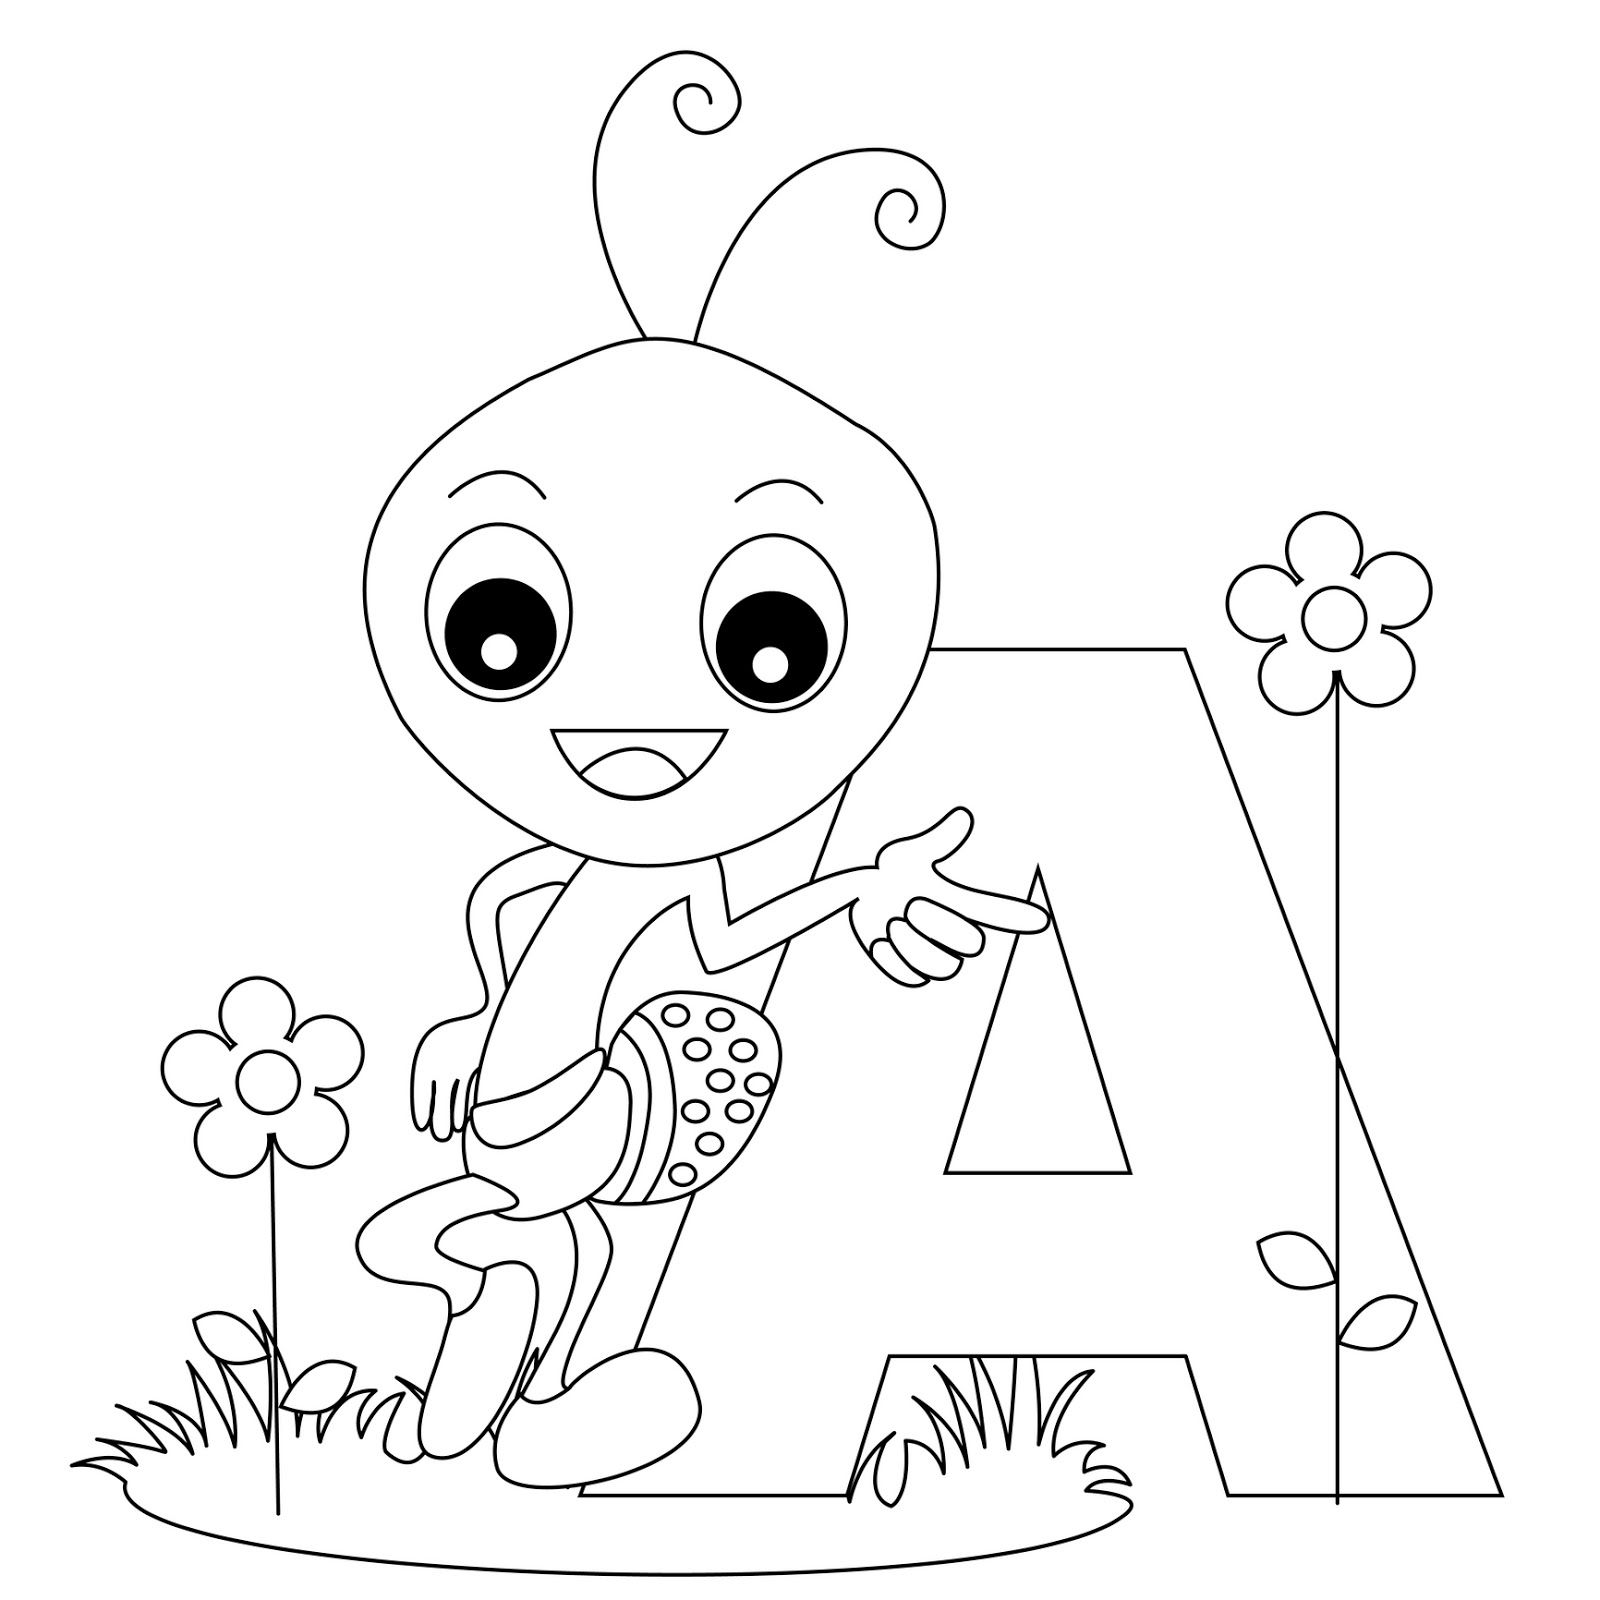 abc alphabet coloring sheets abc alphabet coloring pages at getdrawings free download alphabet sheets coloring abc